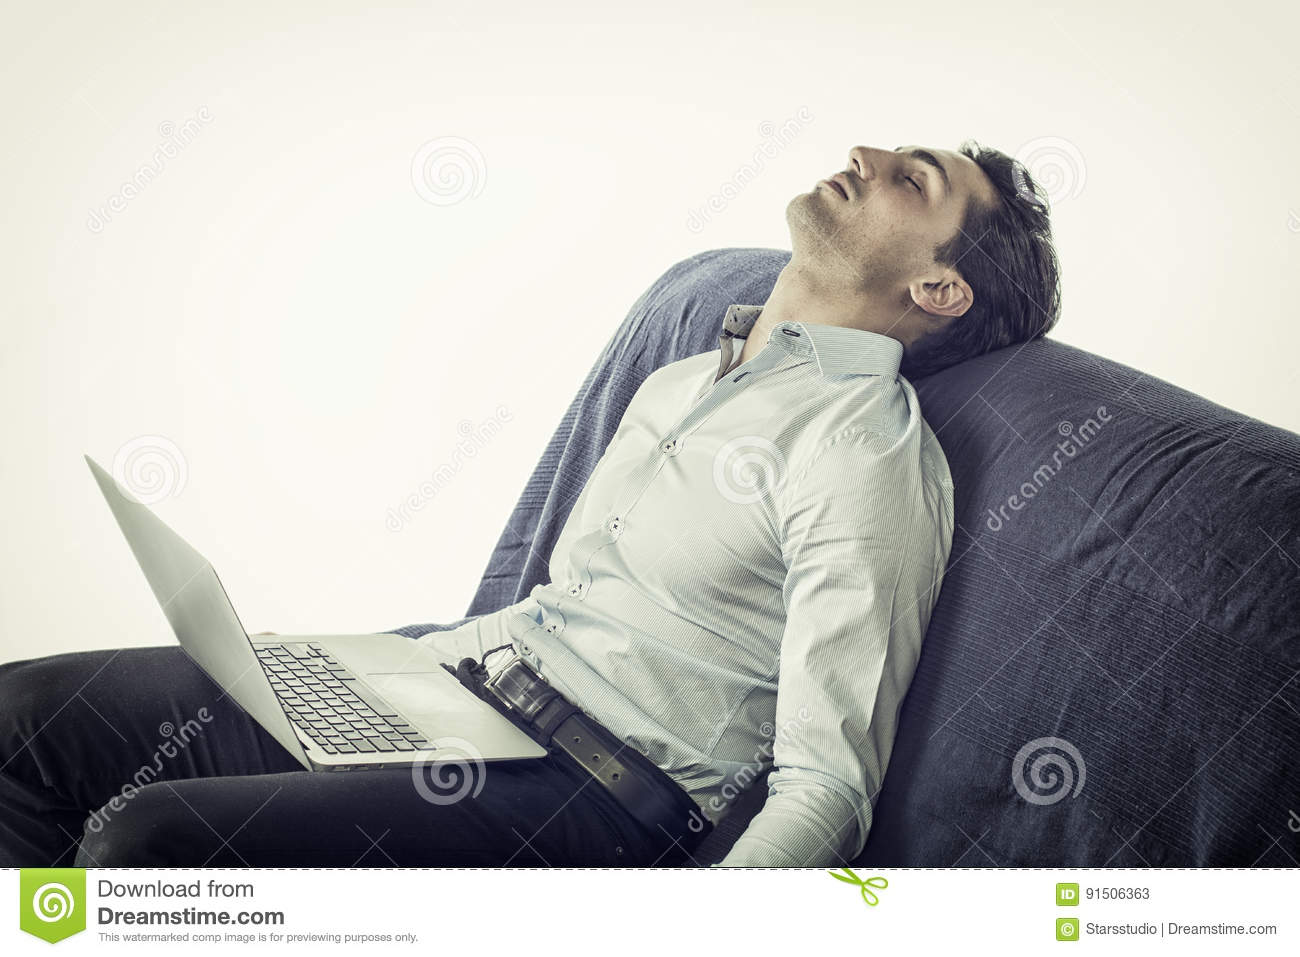 Miraculous Young Man Sleeping With Computer On Couch Stock Image Unemploymentrelief Wooden Chair Designs For Living Room Unemploymentrelieforg